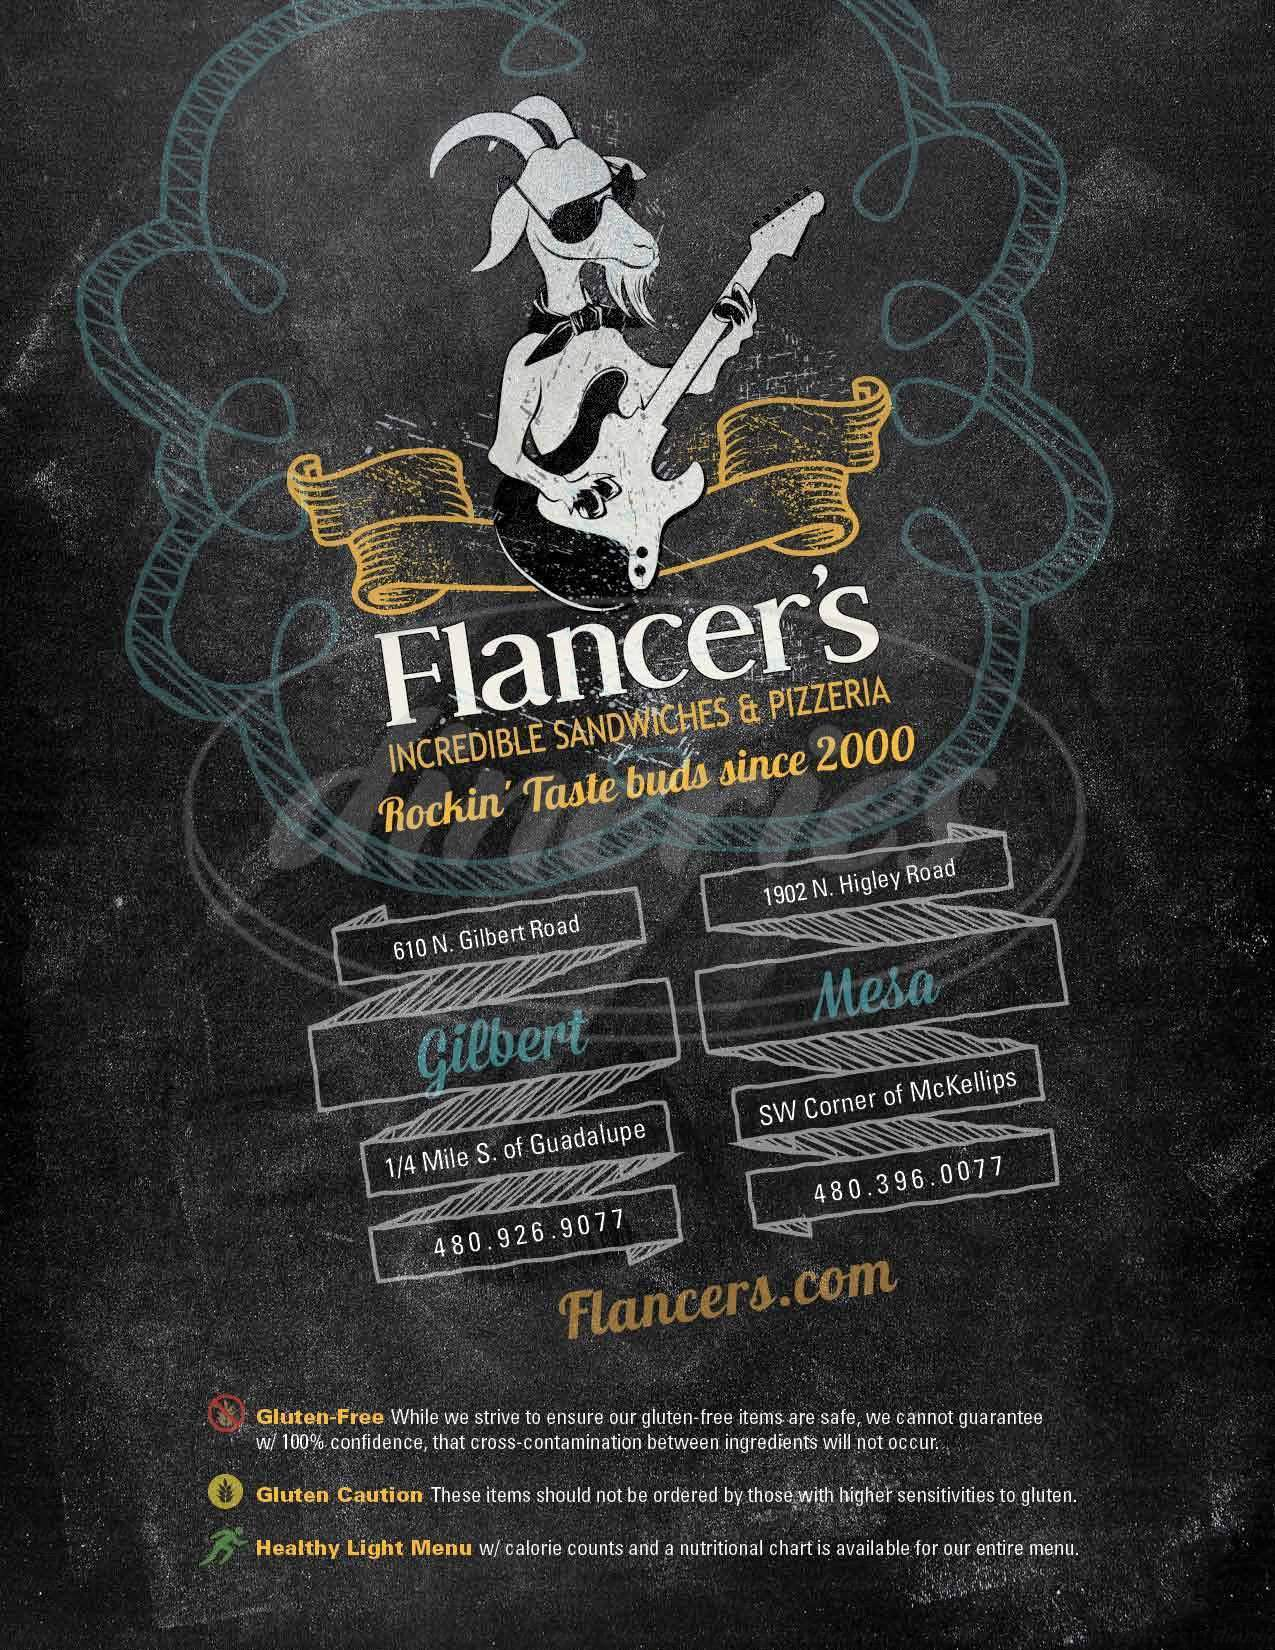 menu for Flancer's Cafe